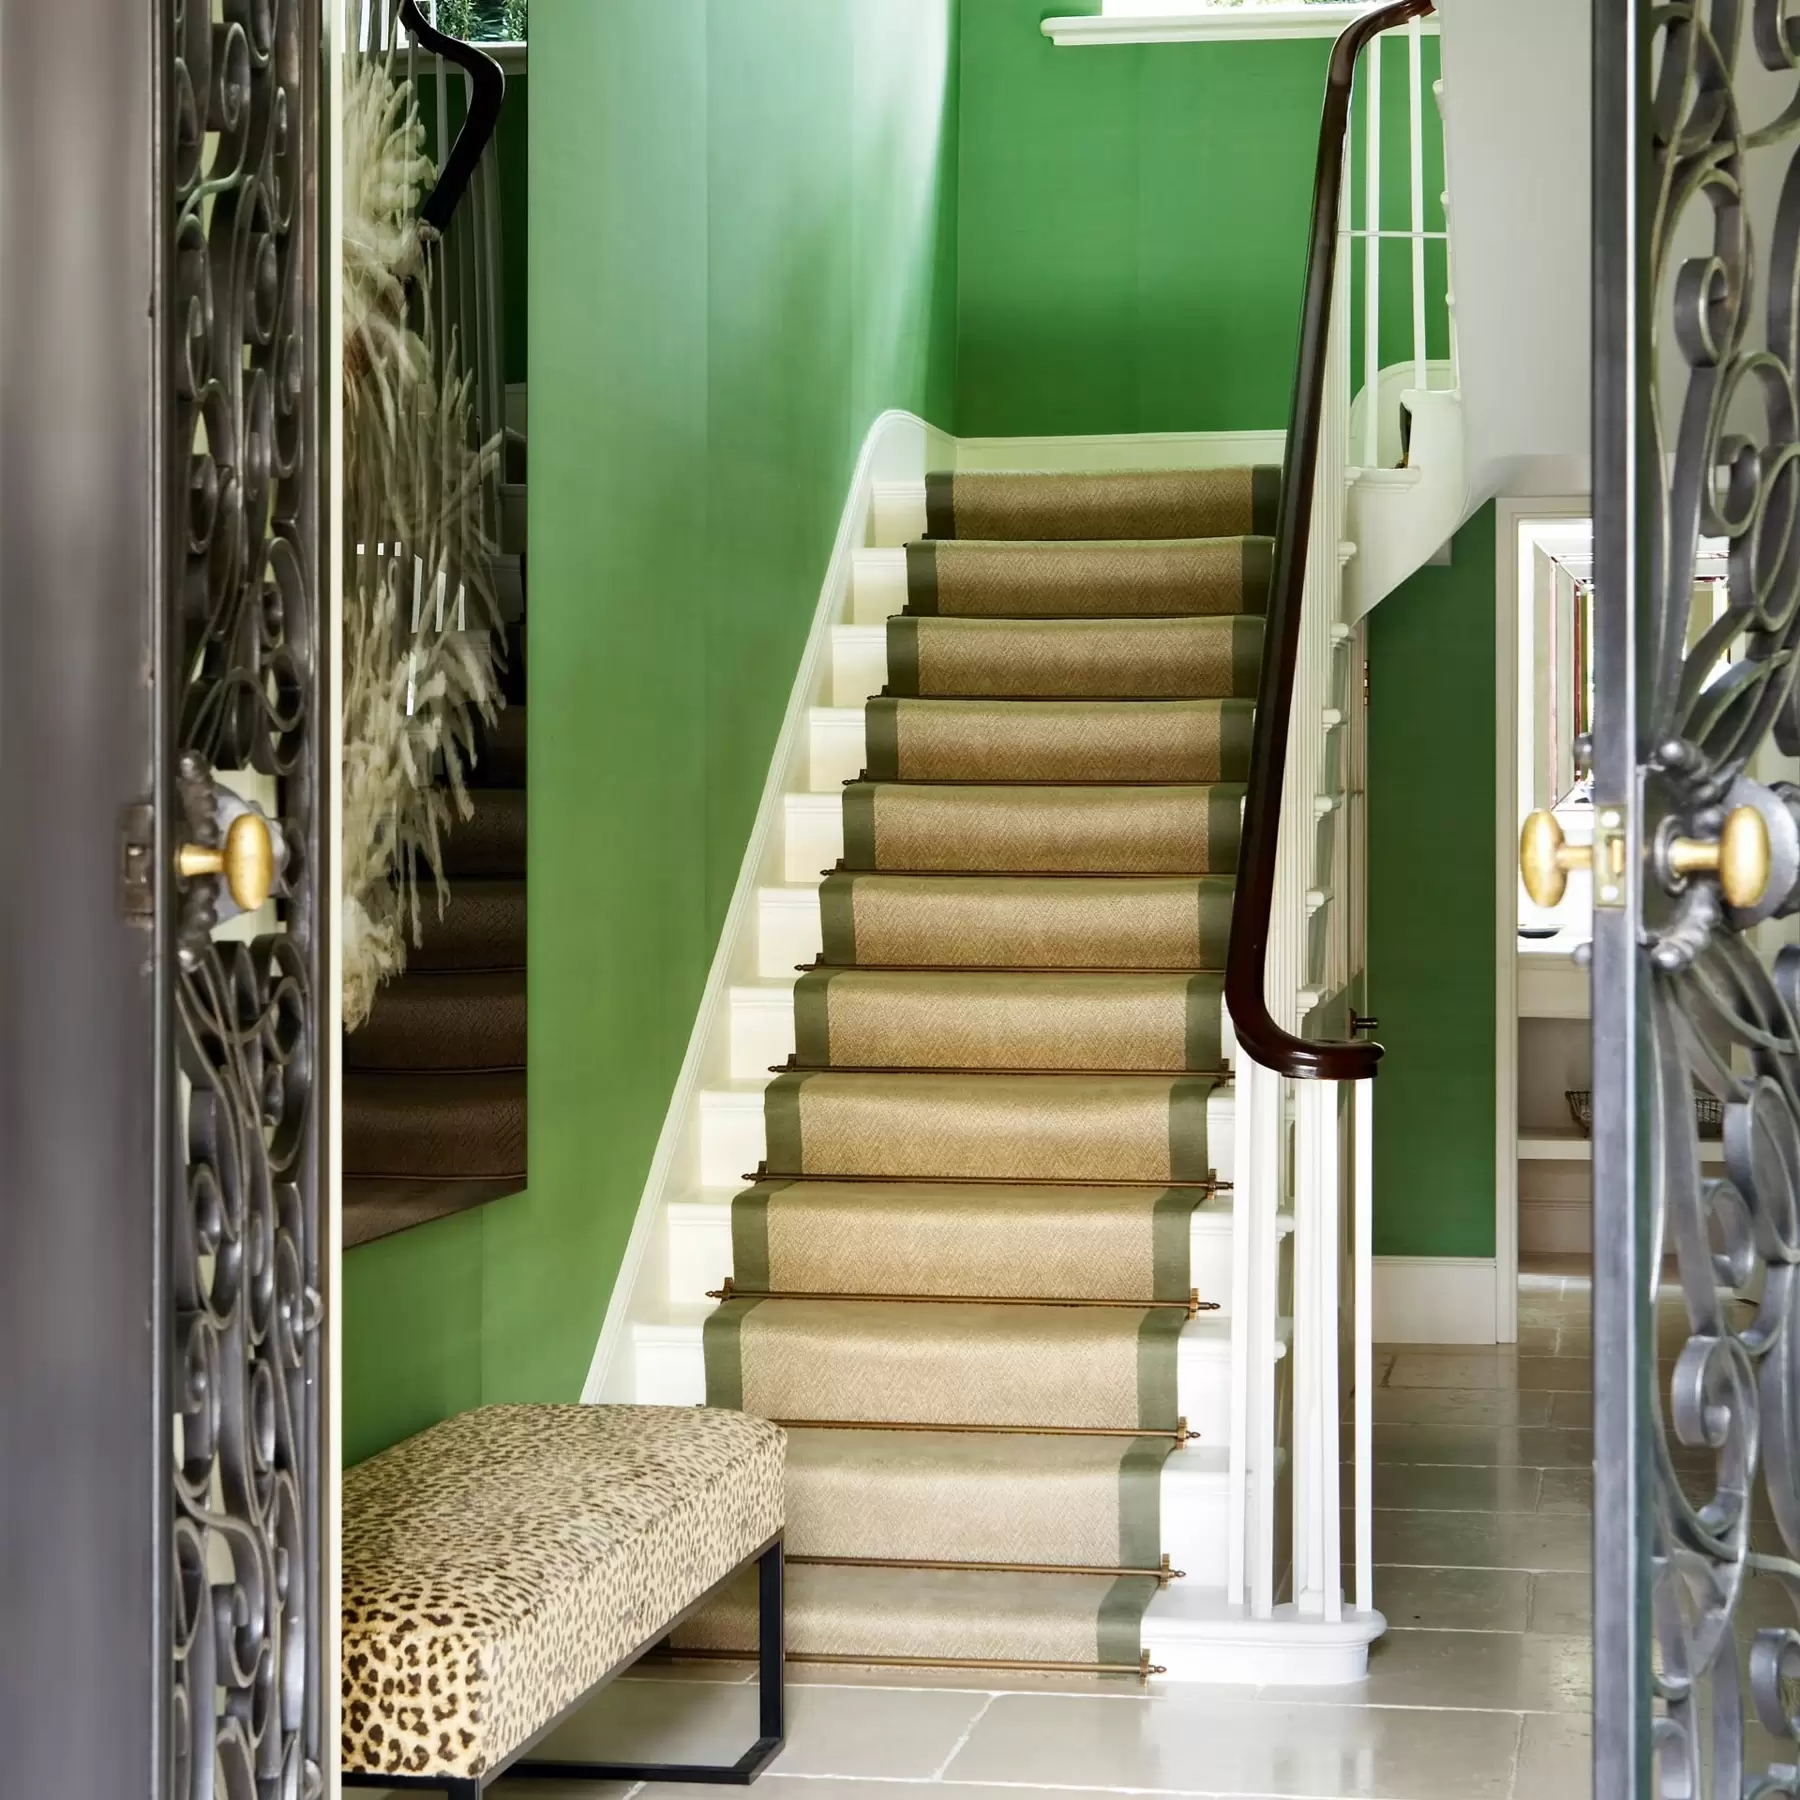 Stylish Stair Runner Carpet Ideas House Garden   Patterned Carpet For Stairs And Landing   Carpeting   Middle Open Concept   Diamond Uk Pattern   Striped Stair Carpet Entrance   Victorian Style